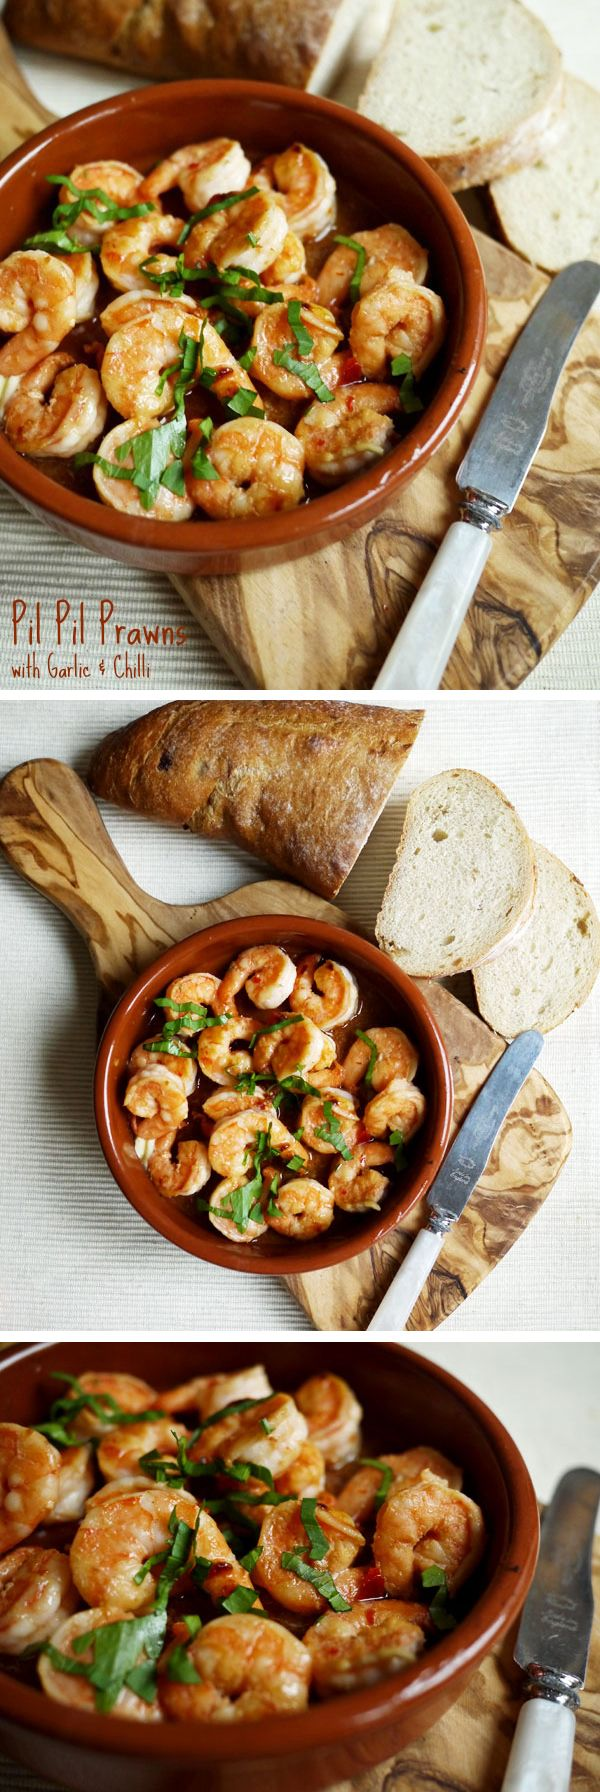 227 best spanish food images on pinterest cooker recipes vegan pil pil prawns with garlic and chilli chilli recipestapas recipesseafood recipesseafood dishesspanish food forumfinder Gallery